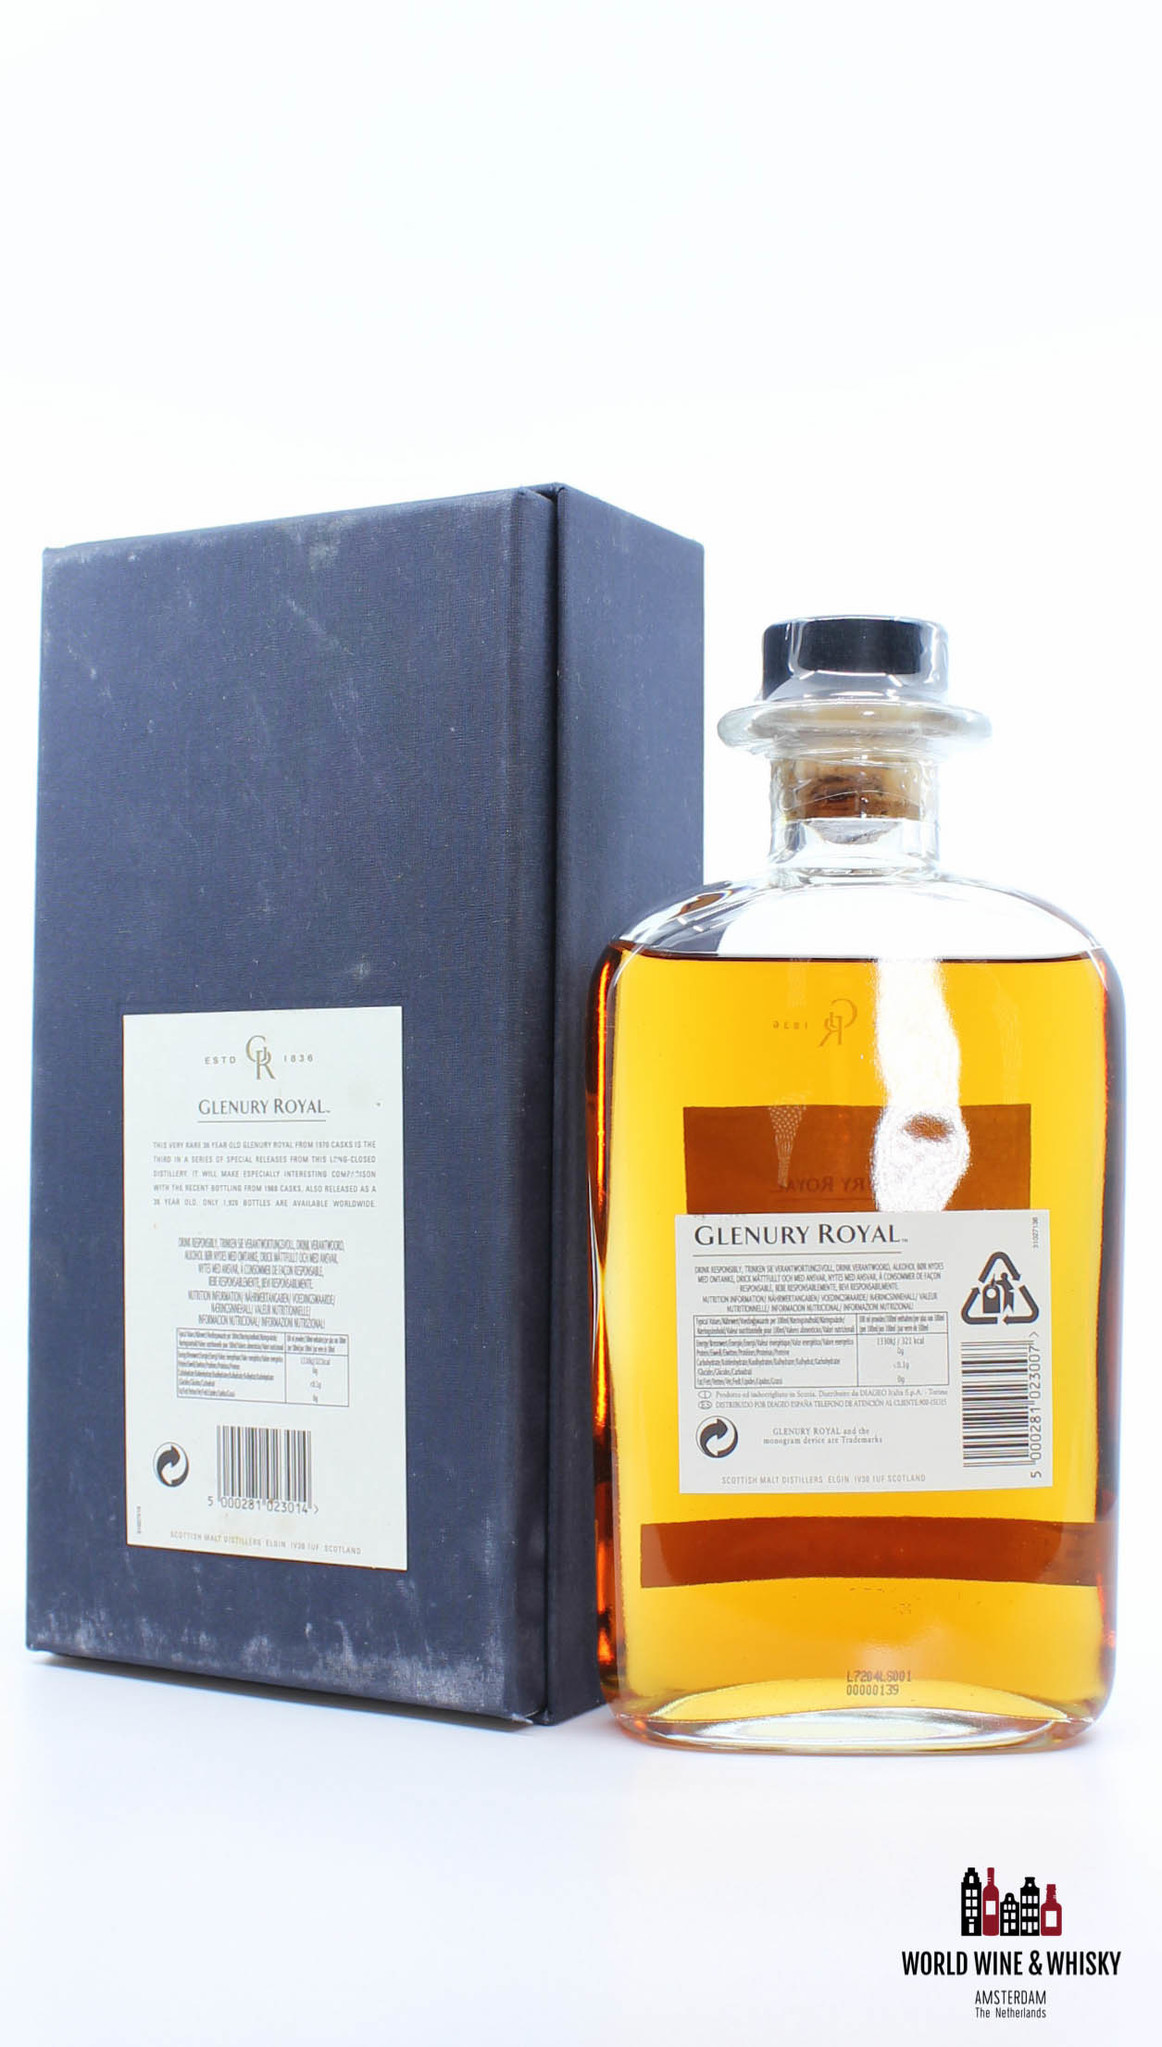 Glenury Royal Glenury Royal 36 Years Old 1970 2007 57.9% (Closed Distillery)